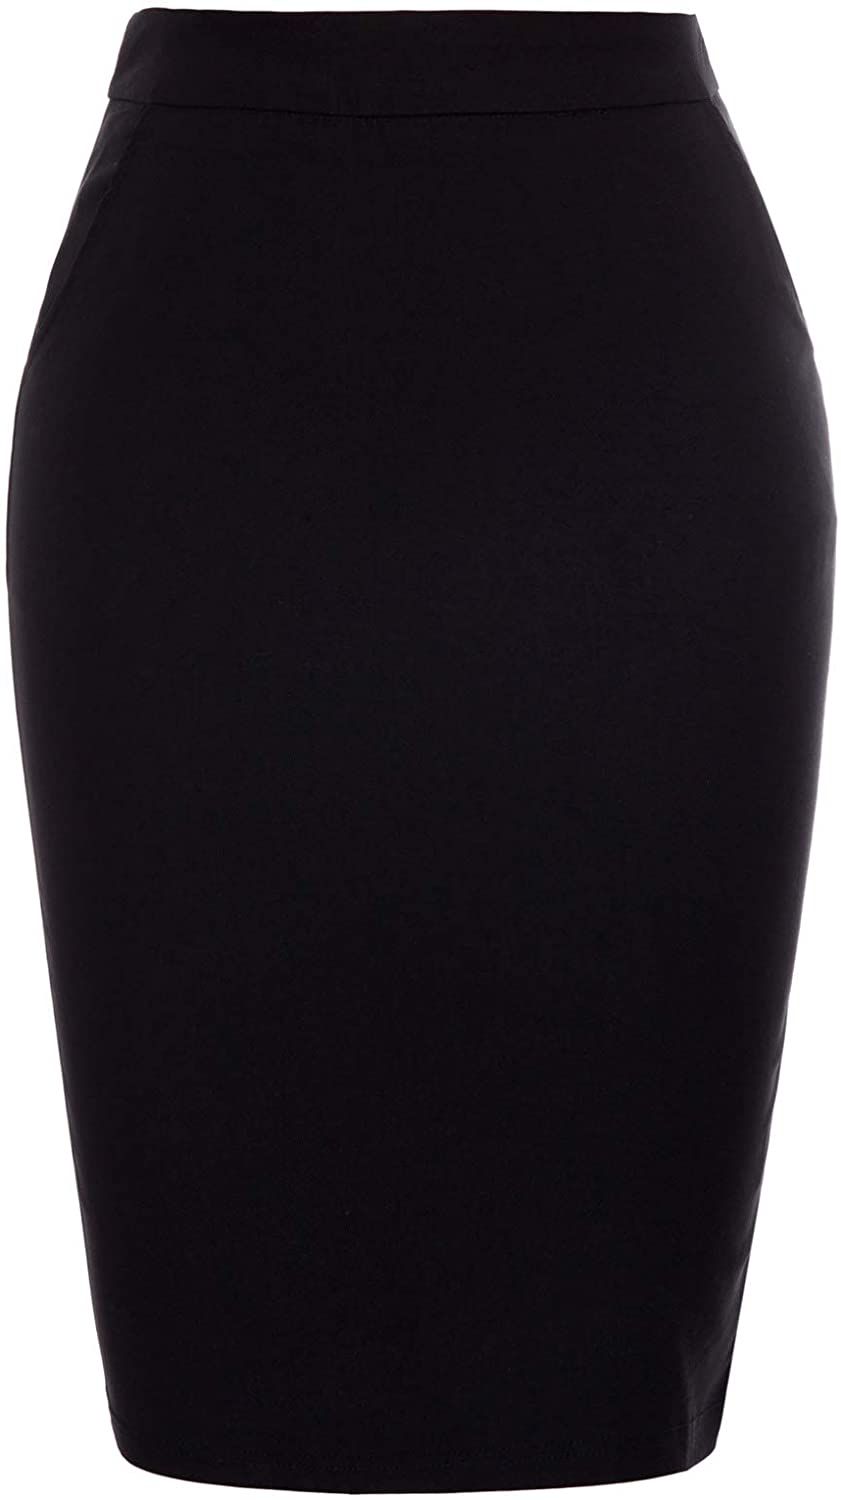 Kate Kasin Womens Knee Length Elastic Waist Stretchy Bodycon Business Pencil Skirt